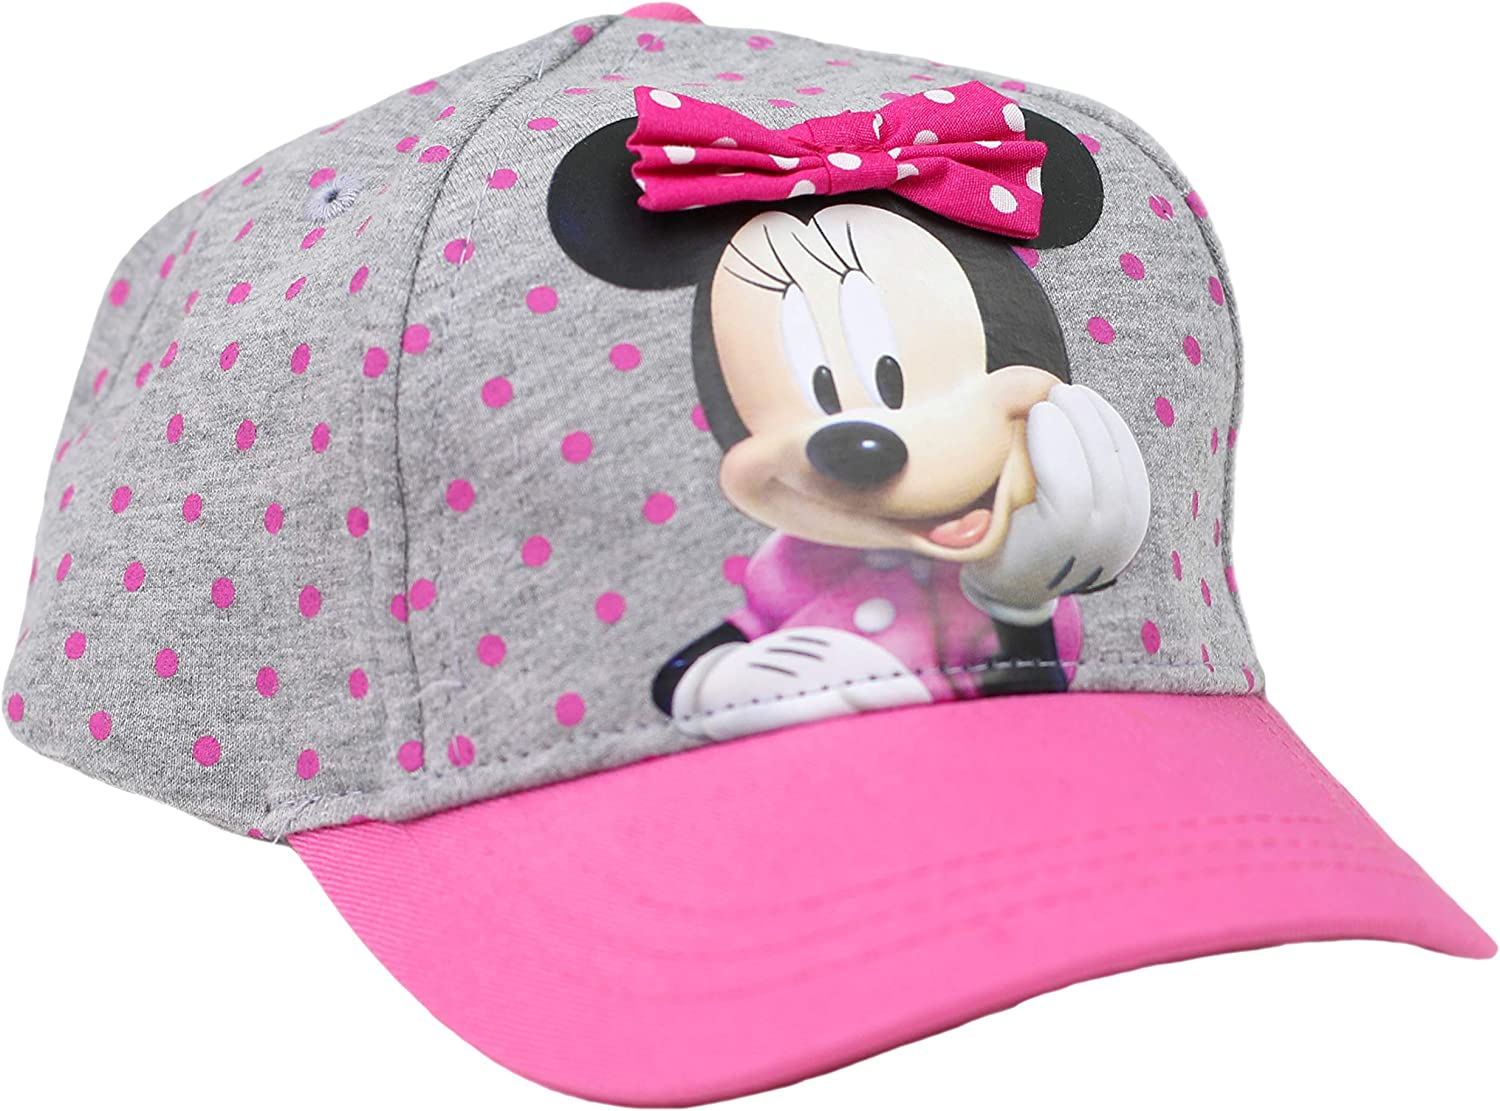 Disney Little Attention excellence brand Girls Minnie Mouse Baseball On Bowtie Cap 3D with